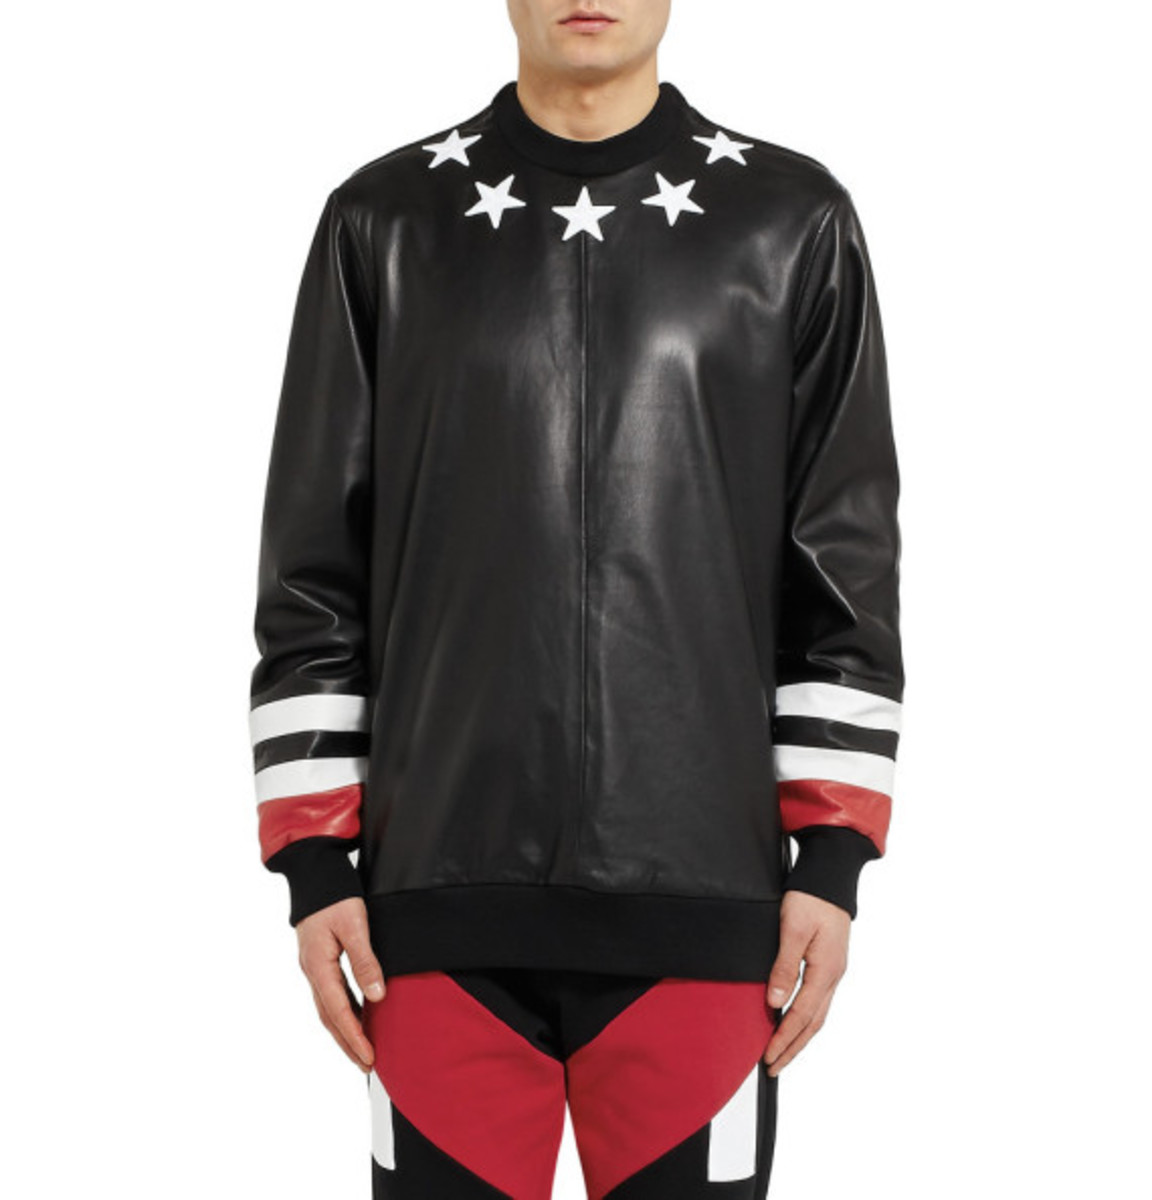 GIVENCHY - Star Detail Leather Sweatshirt with Jersey Back - 0